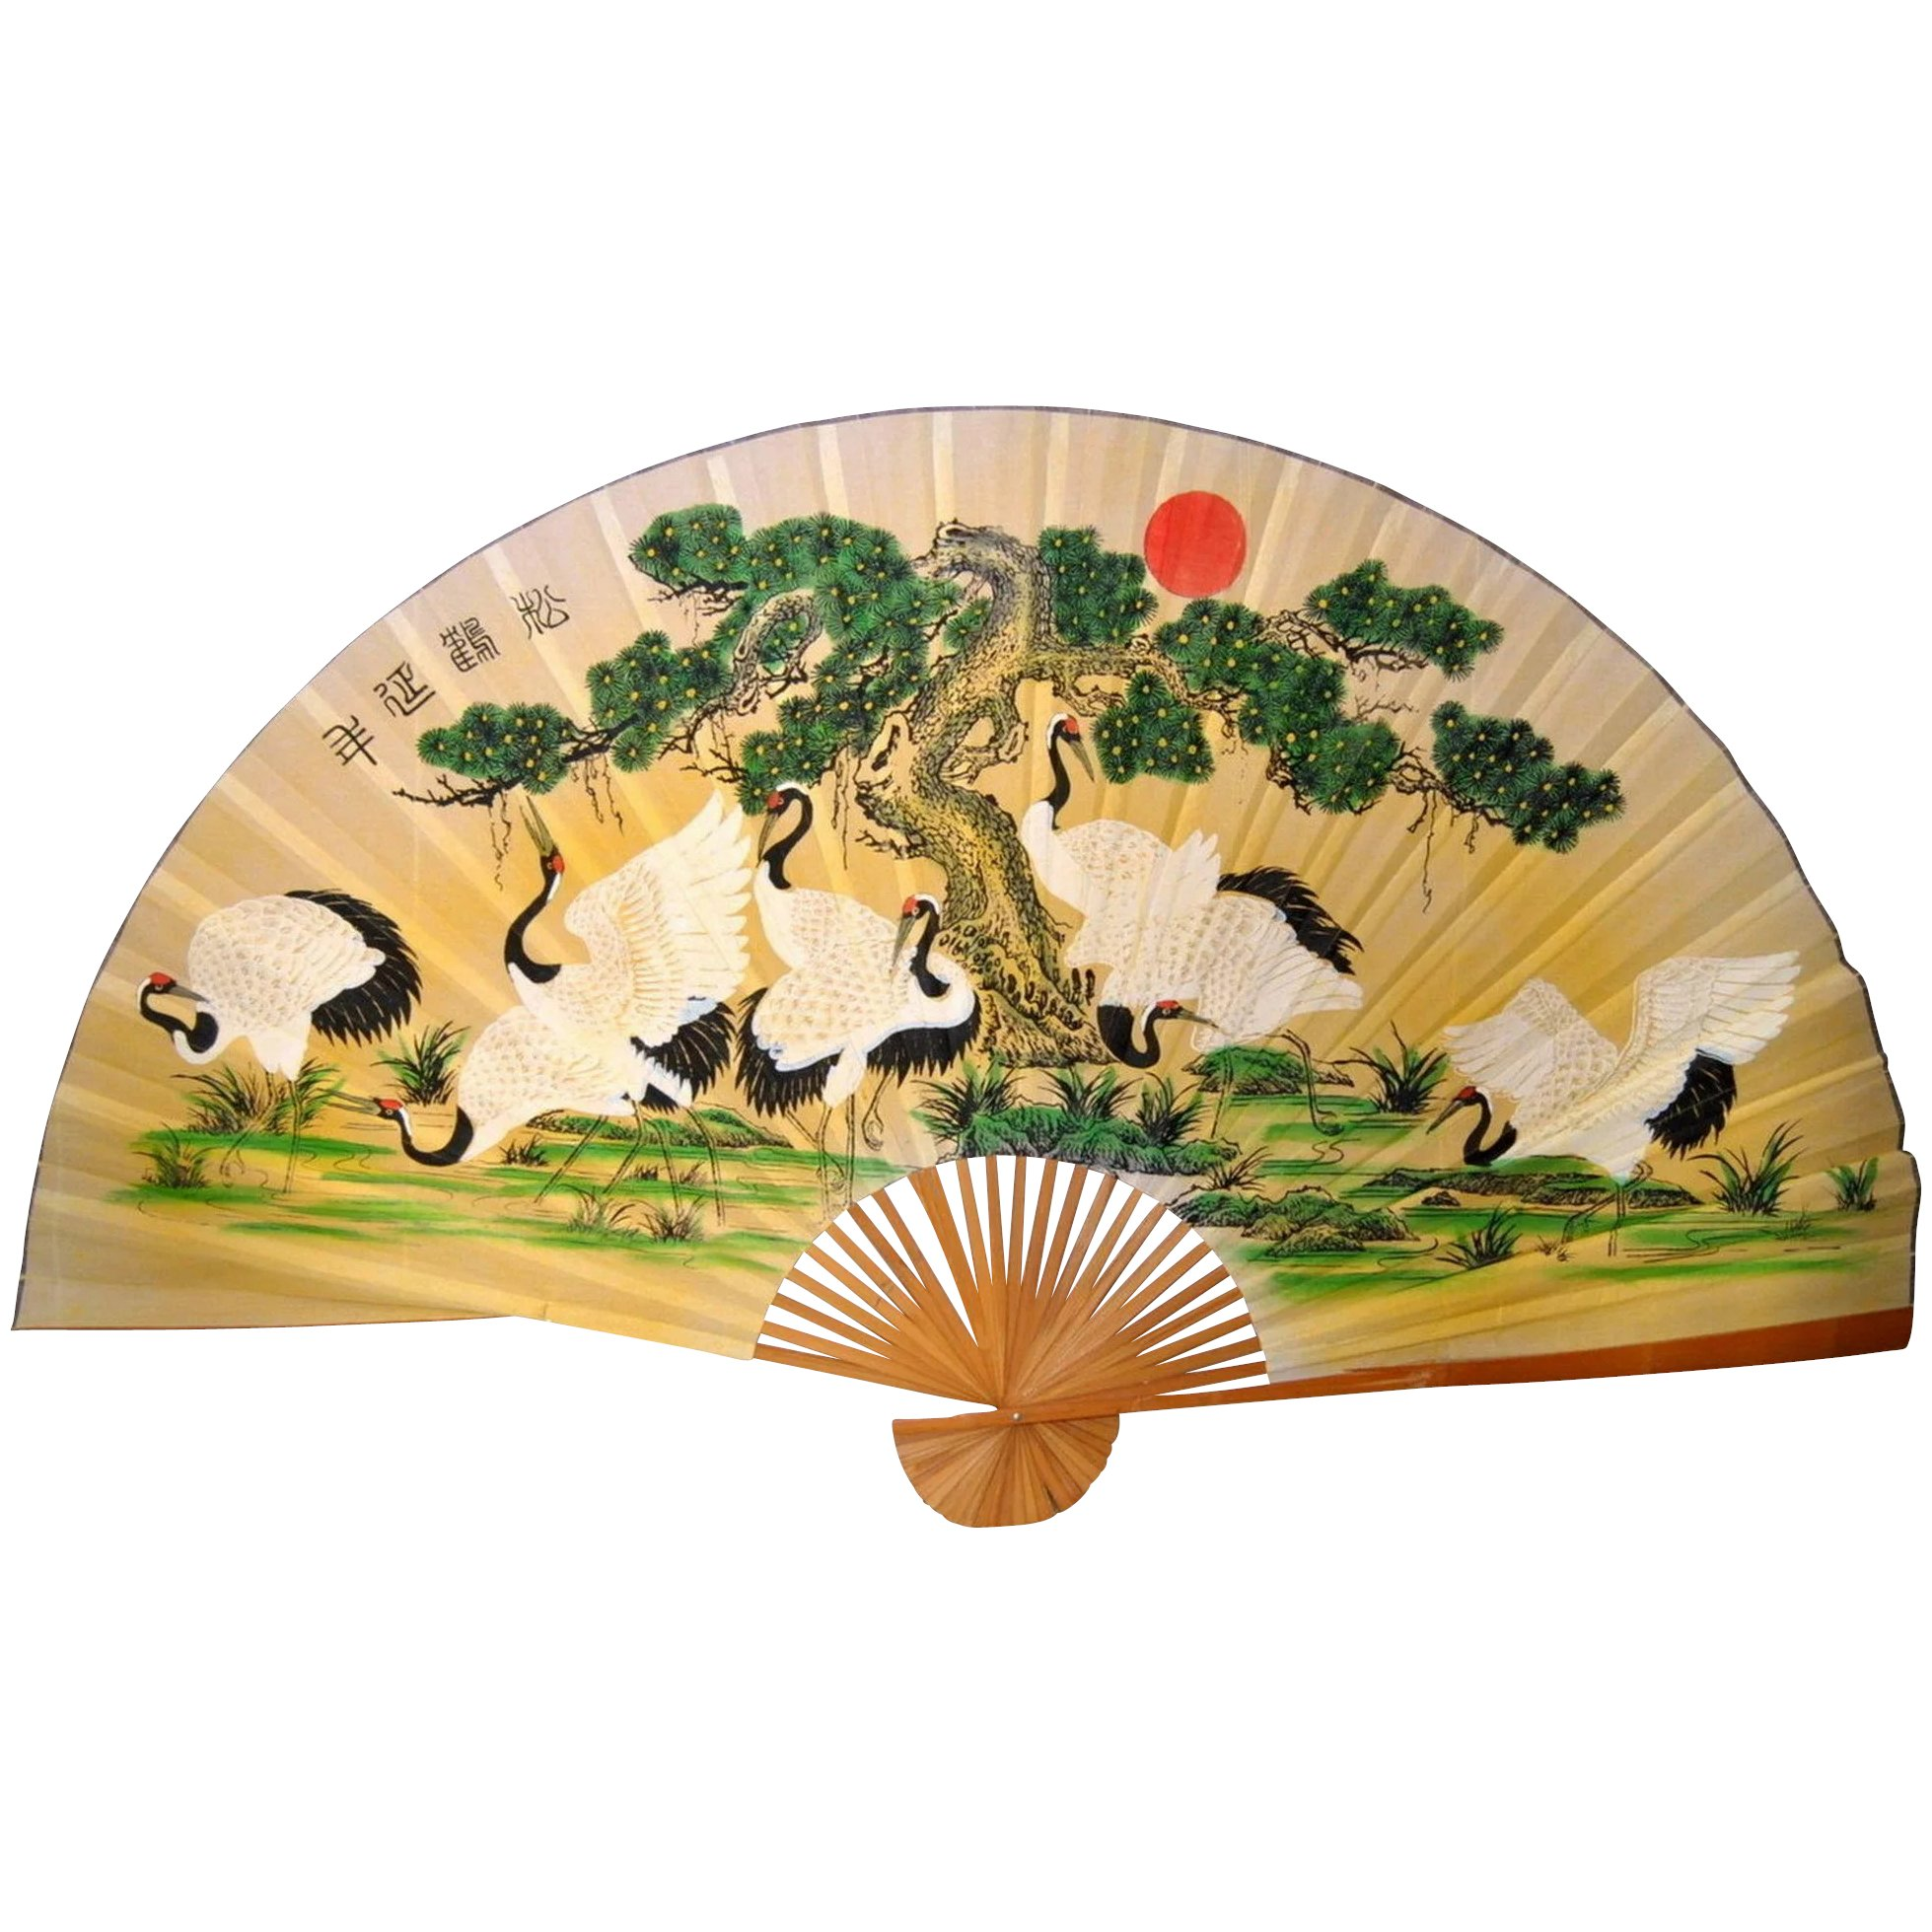 Display Japanese Fan, 79 inches x 50 inches Hemp canvas, Paper ...